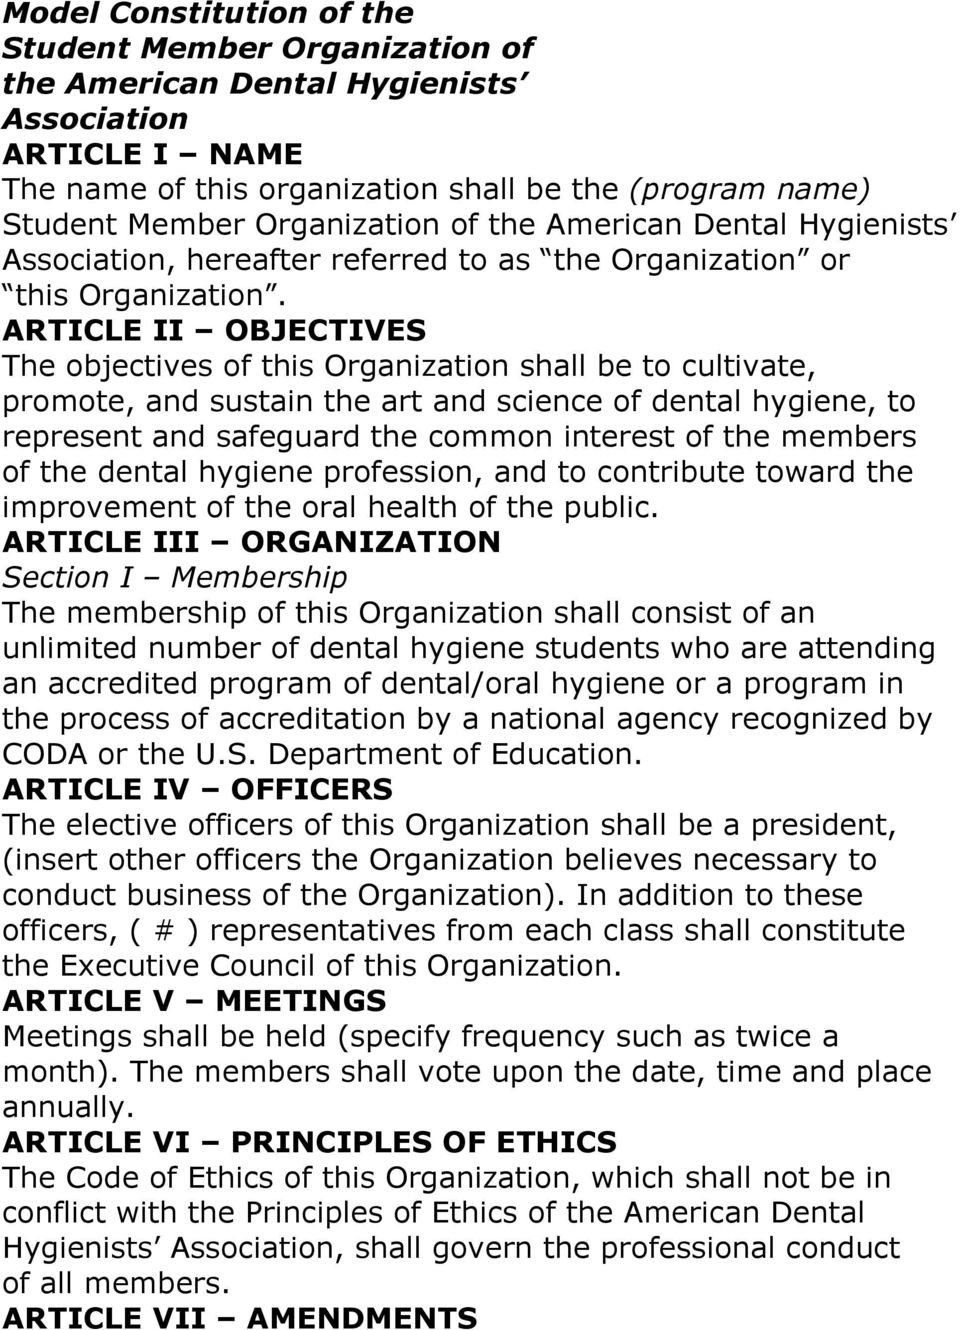 ARTICLE II OBJECTIVES The objectives of this Organization shall be to cultivate, promote, and sustain the art and science of dental hygiene, to represent and safeguard the common interest of the